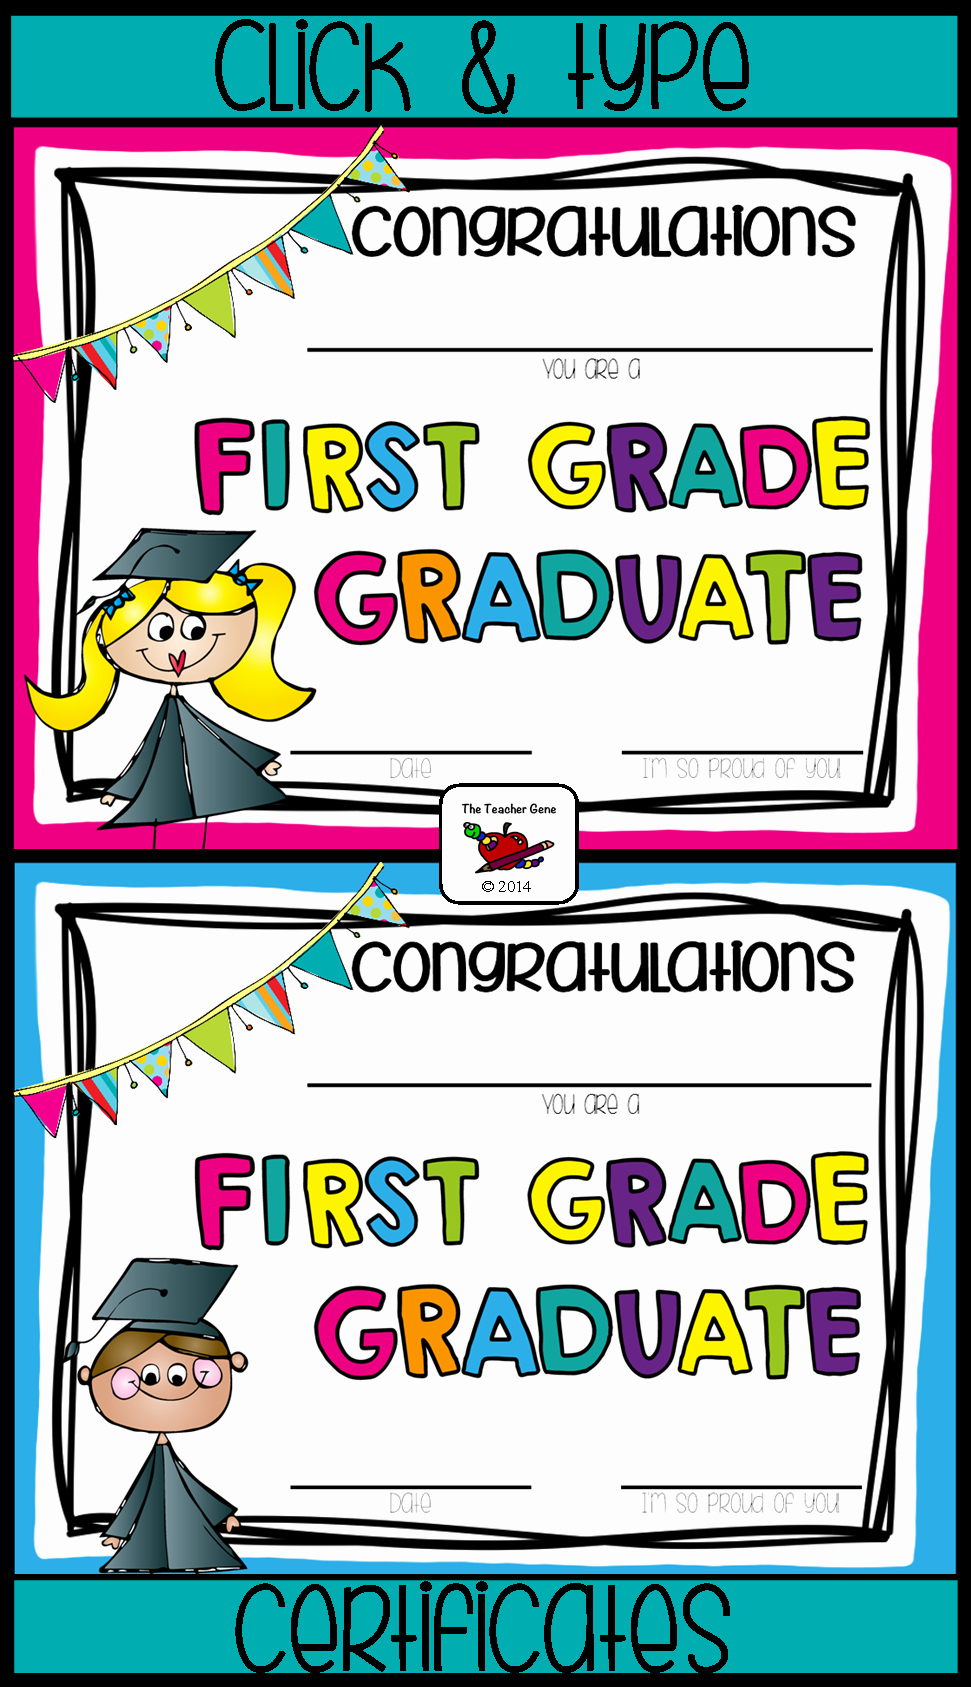 Preschool Certificates Of Completion Best Of First Grade Graduation Certificates & First Grade